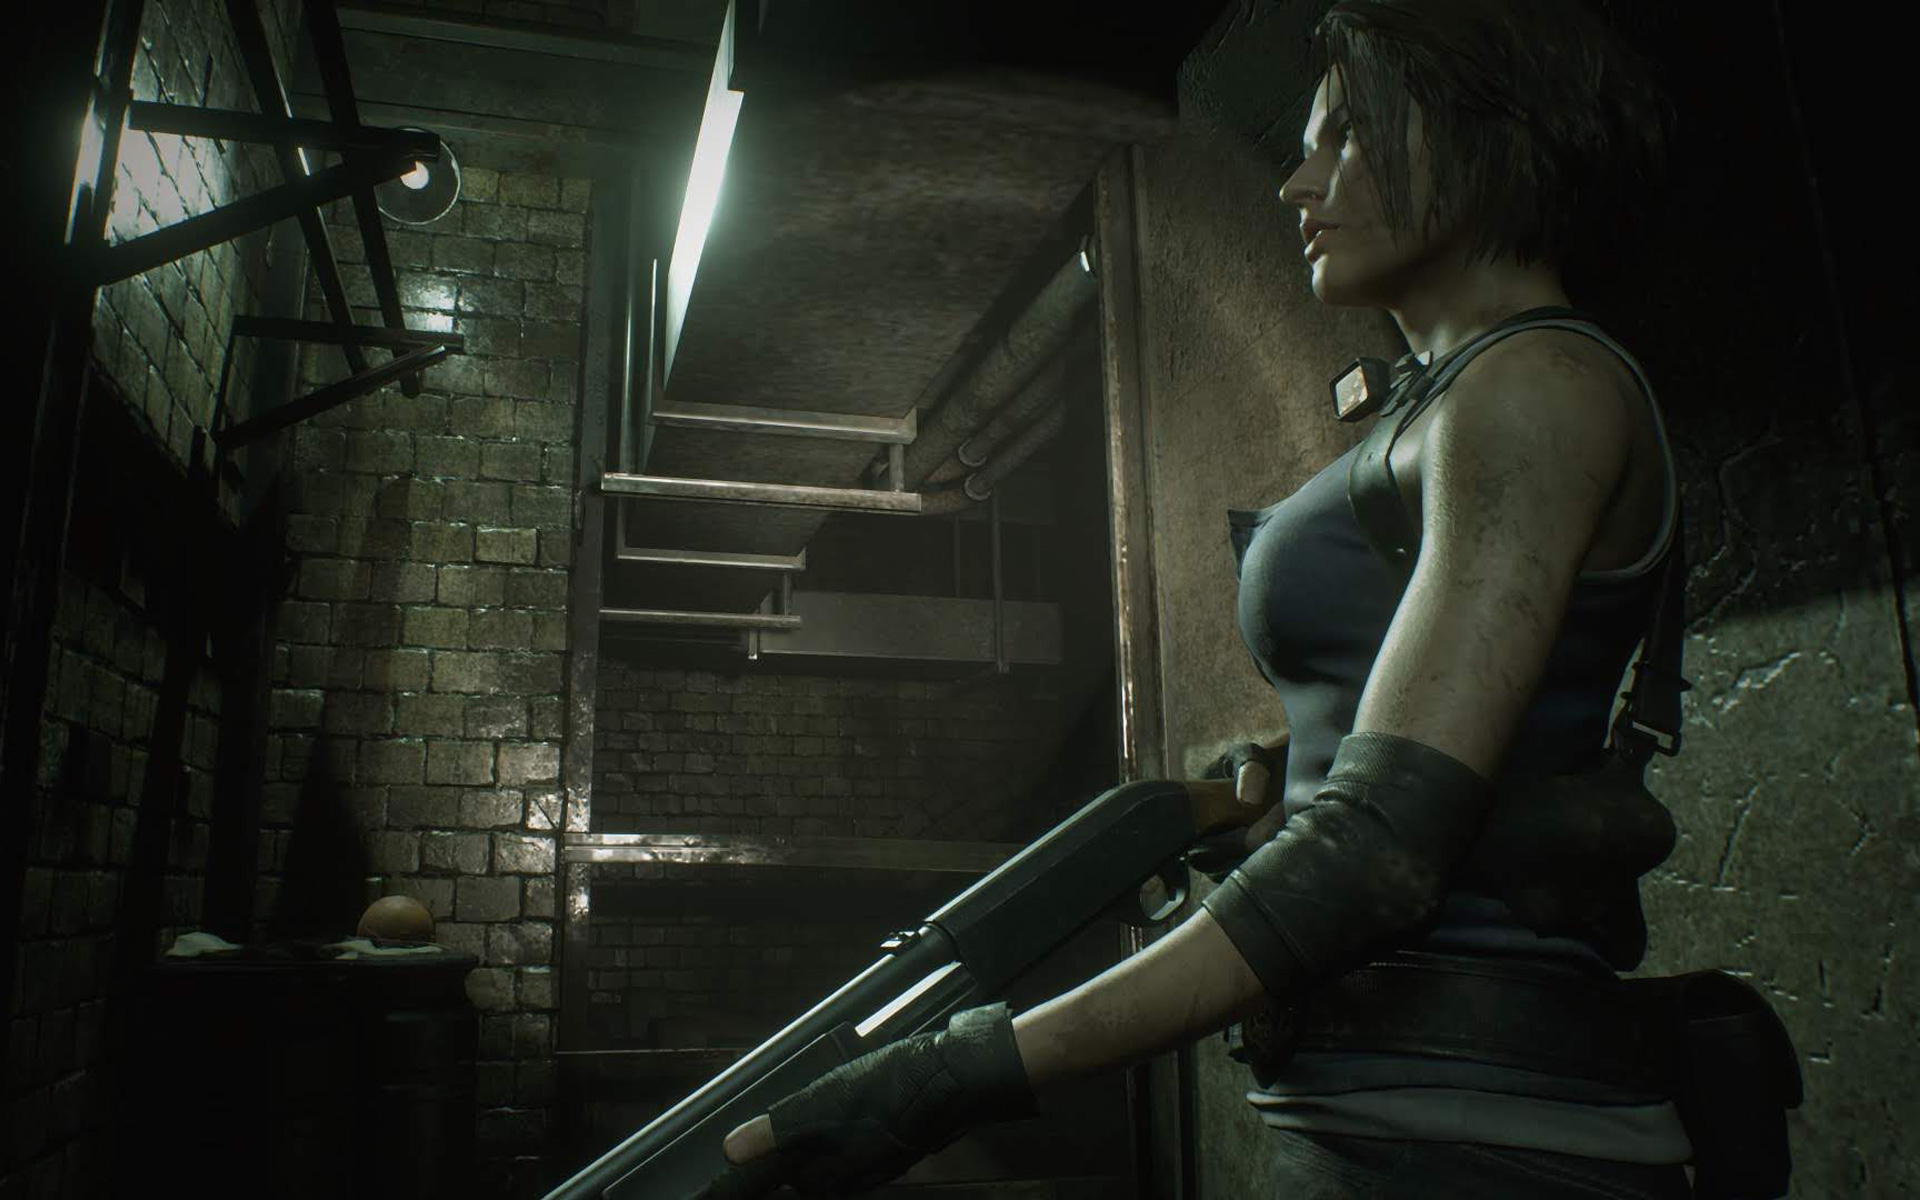 Free Resident Evil 3 Wallpaper in 1920x1200